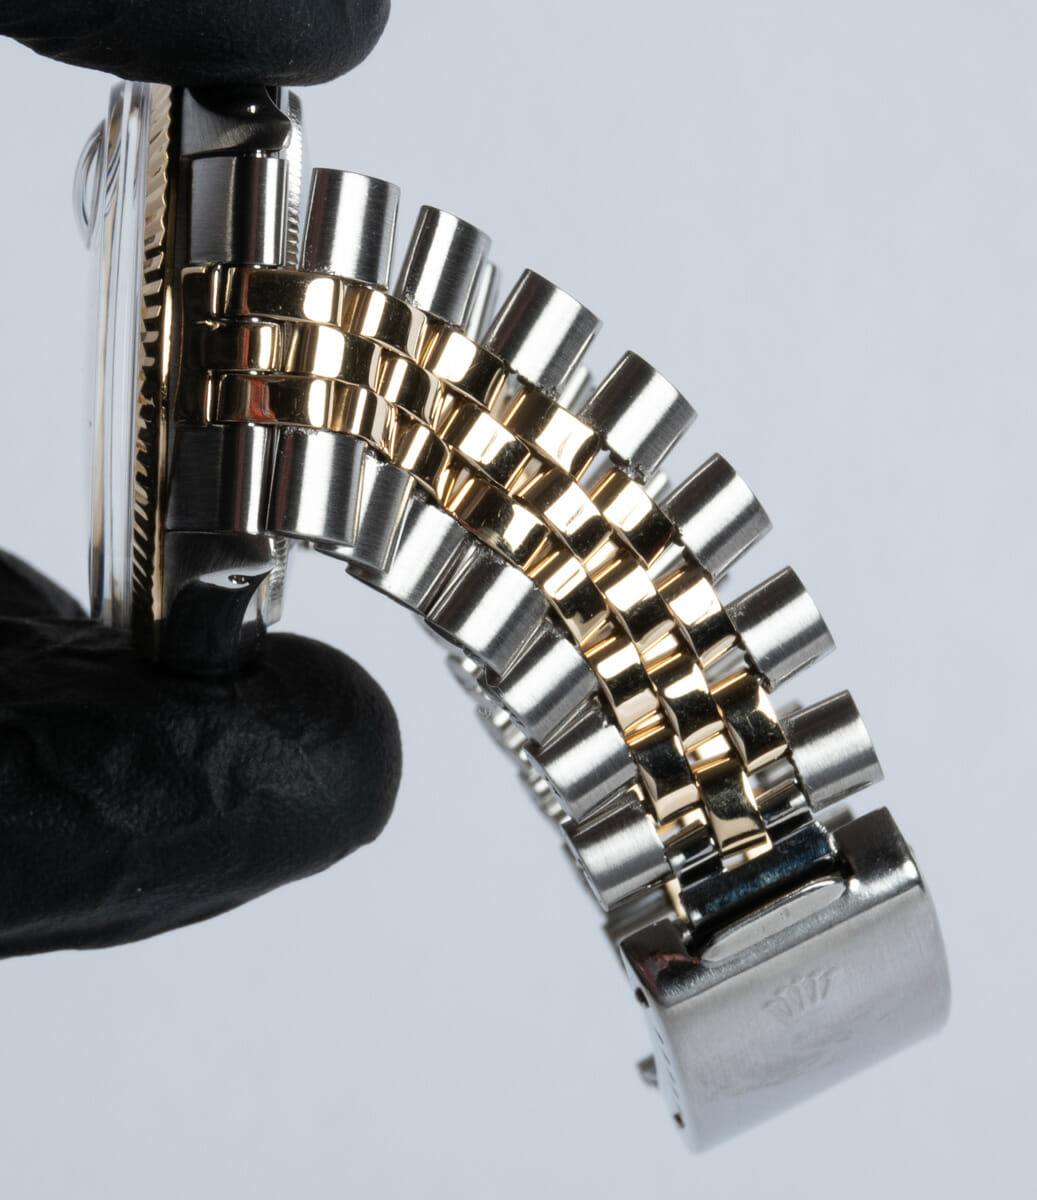 Extra Rear Shot of Datejust - Wide Boy Sigma